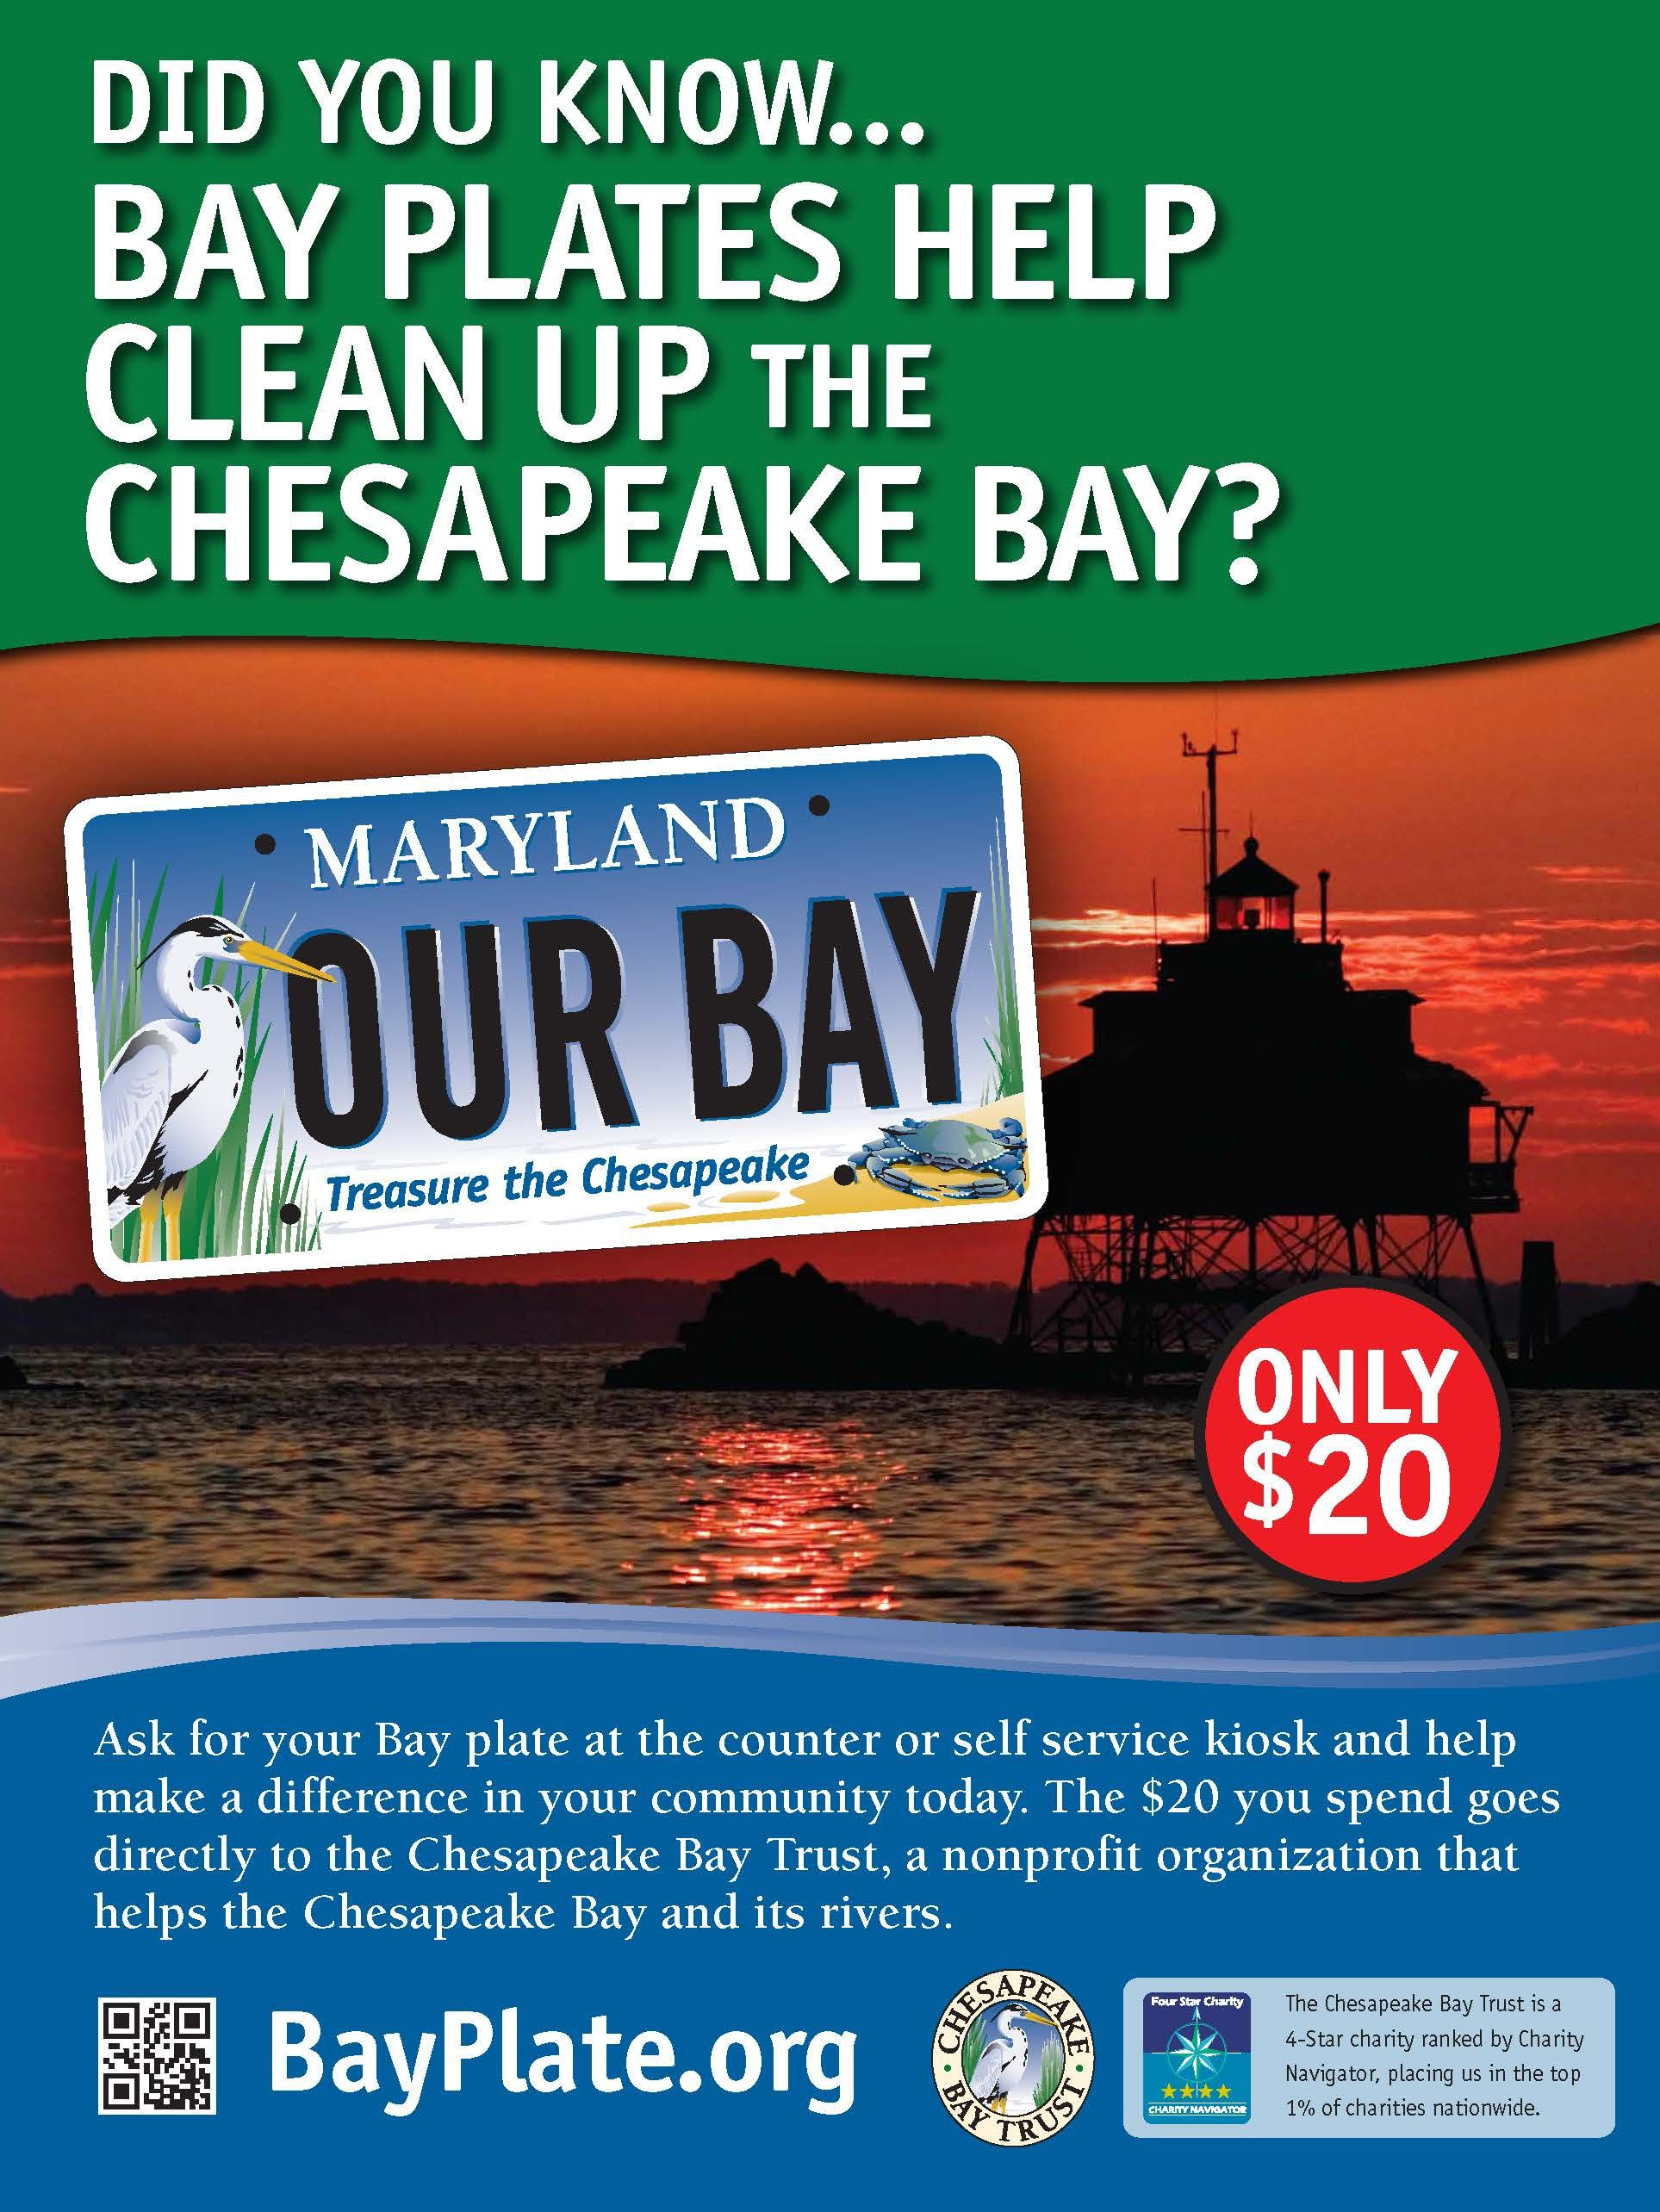 Bay plates actually help clean up the chesapeake